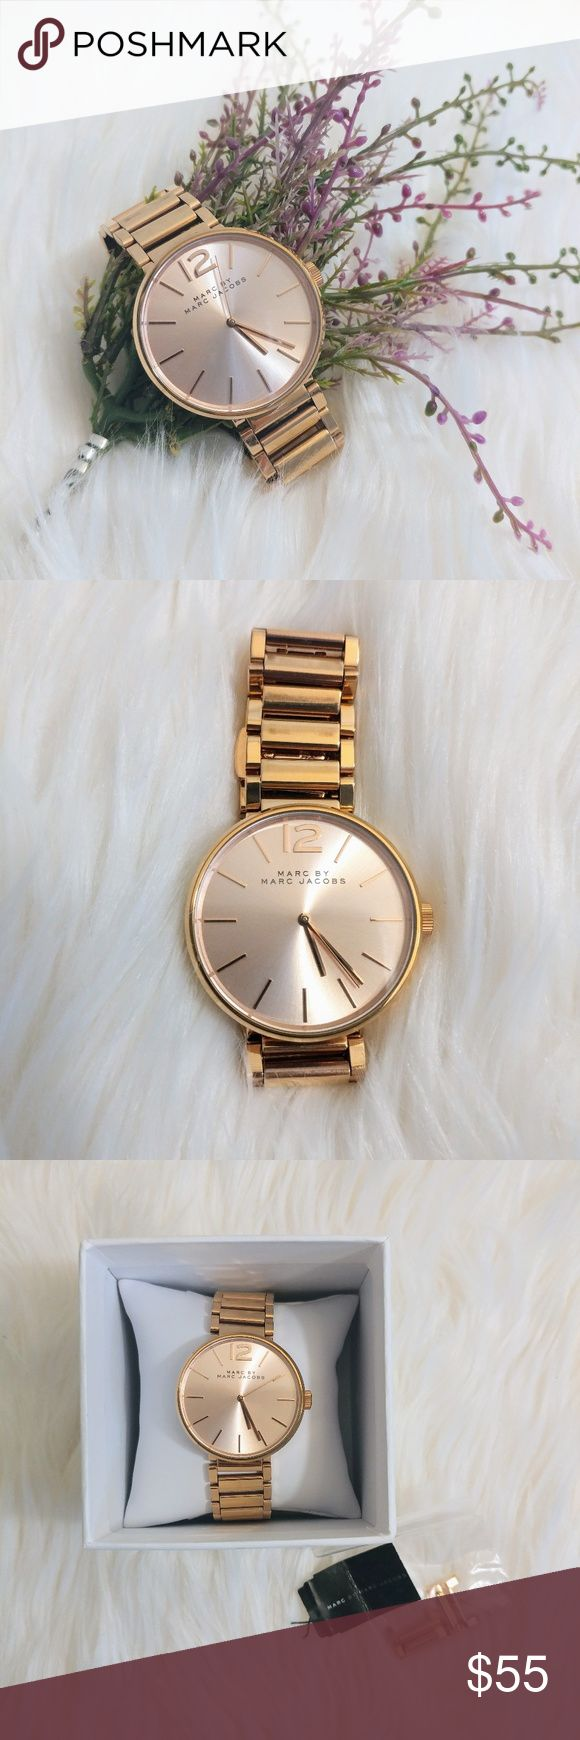 Marc by Marc Jacobs Rose Gold Watch Brand: Marc by Marc Jacobs Peggy Rose Gold-Tone Sunray Dial Ladies Watch Case diameter: 36 mm. Water resistant at 50 meters / 165 feet.?  Normal wear, comes with the box and the extra stainless bracelet pieces. Marc by Marc Jacobs Accessories Watches